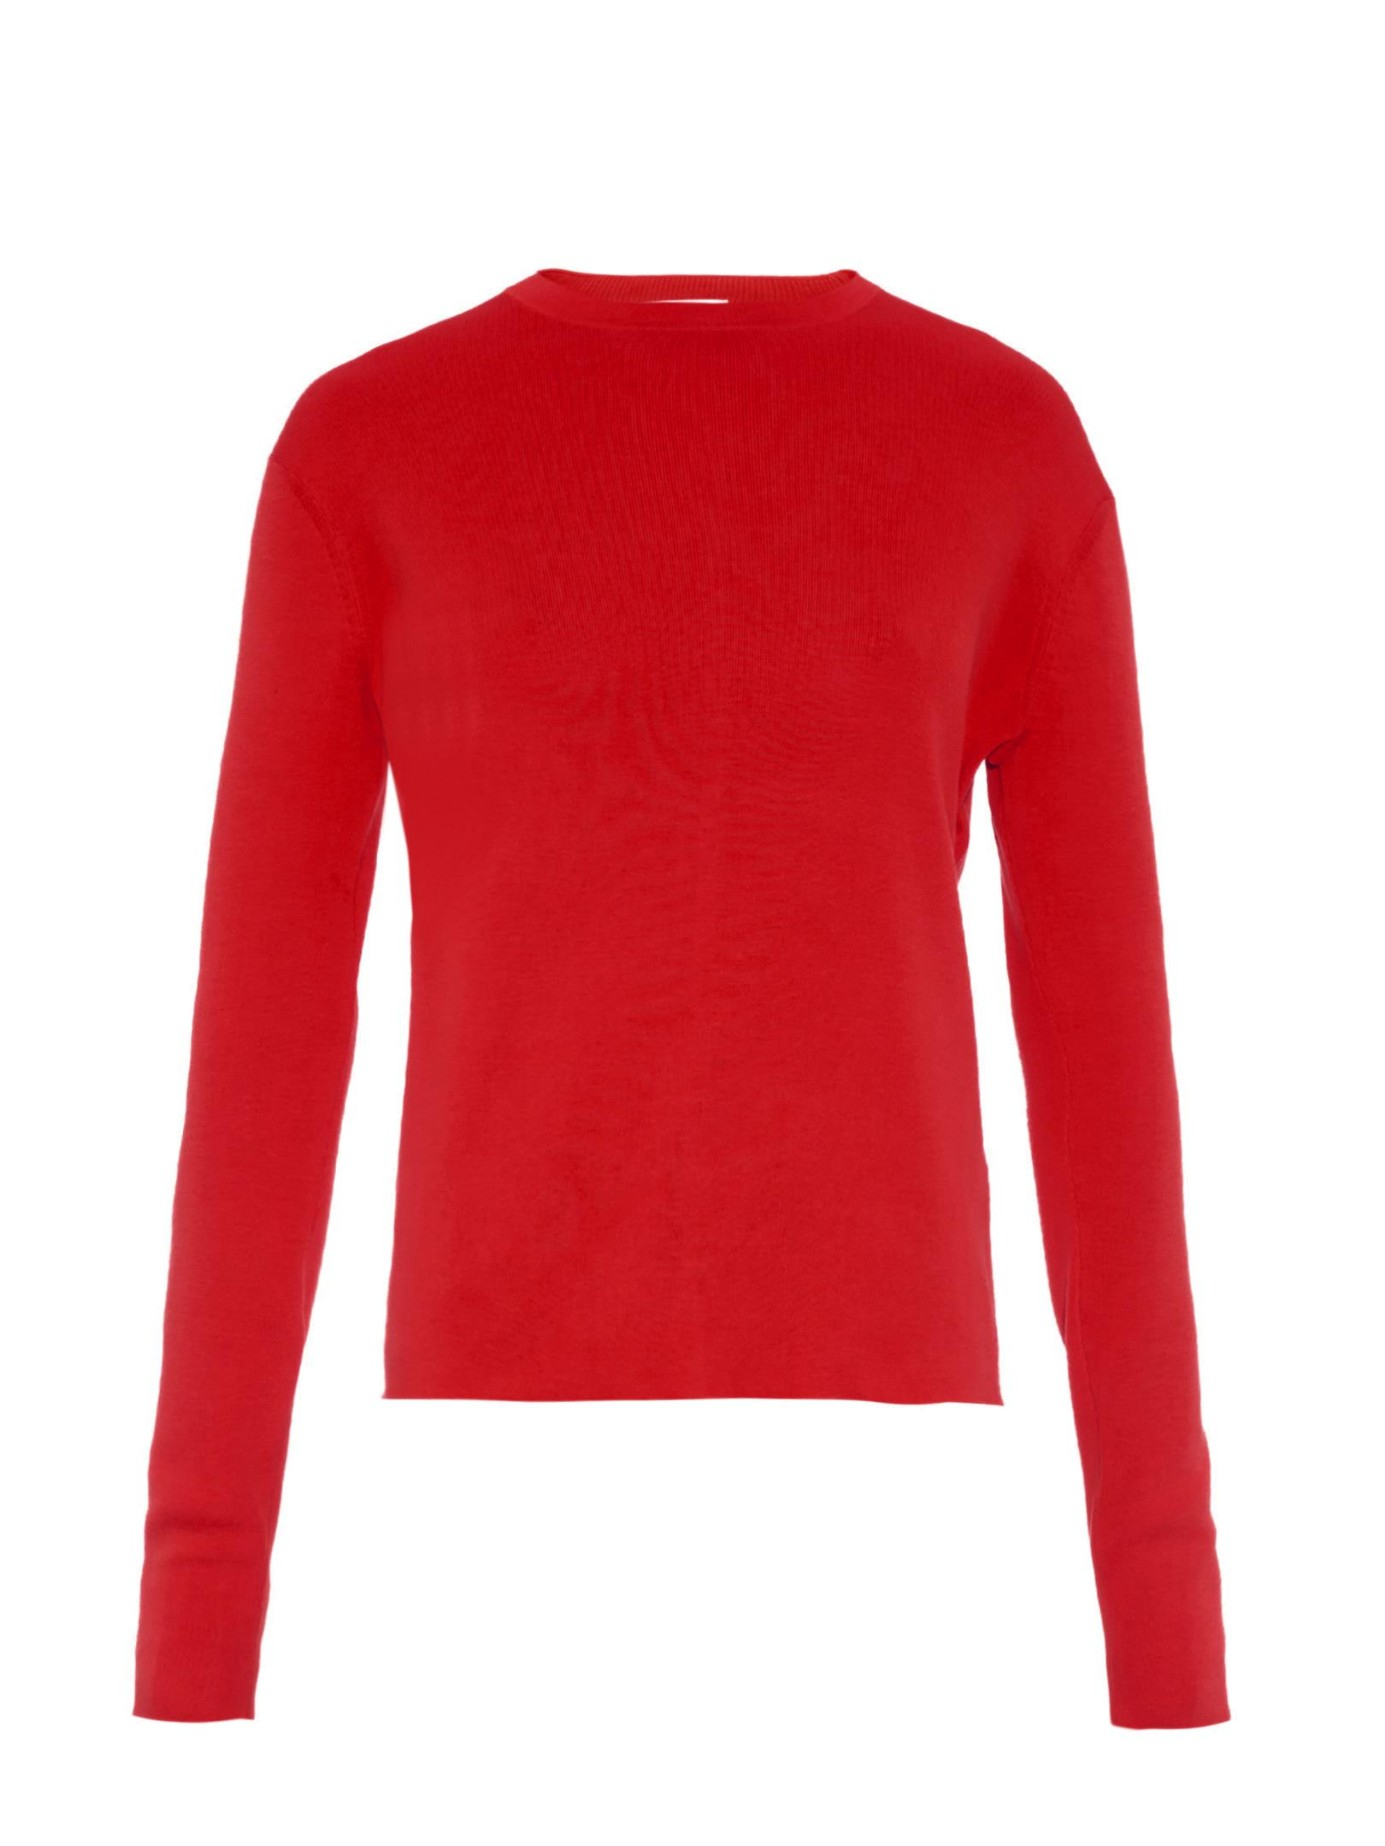 Acne studios Materia Cross-back Cotton Sweater in Red | Lyst